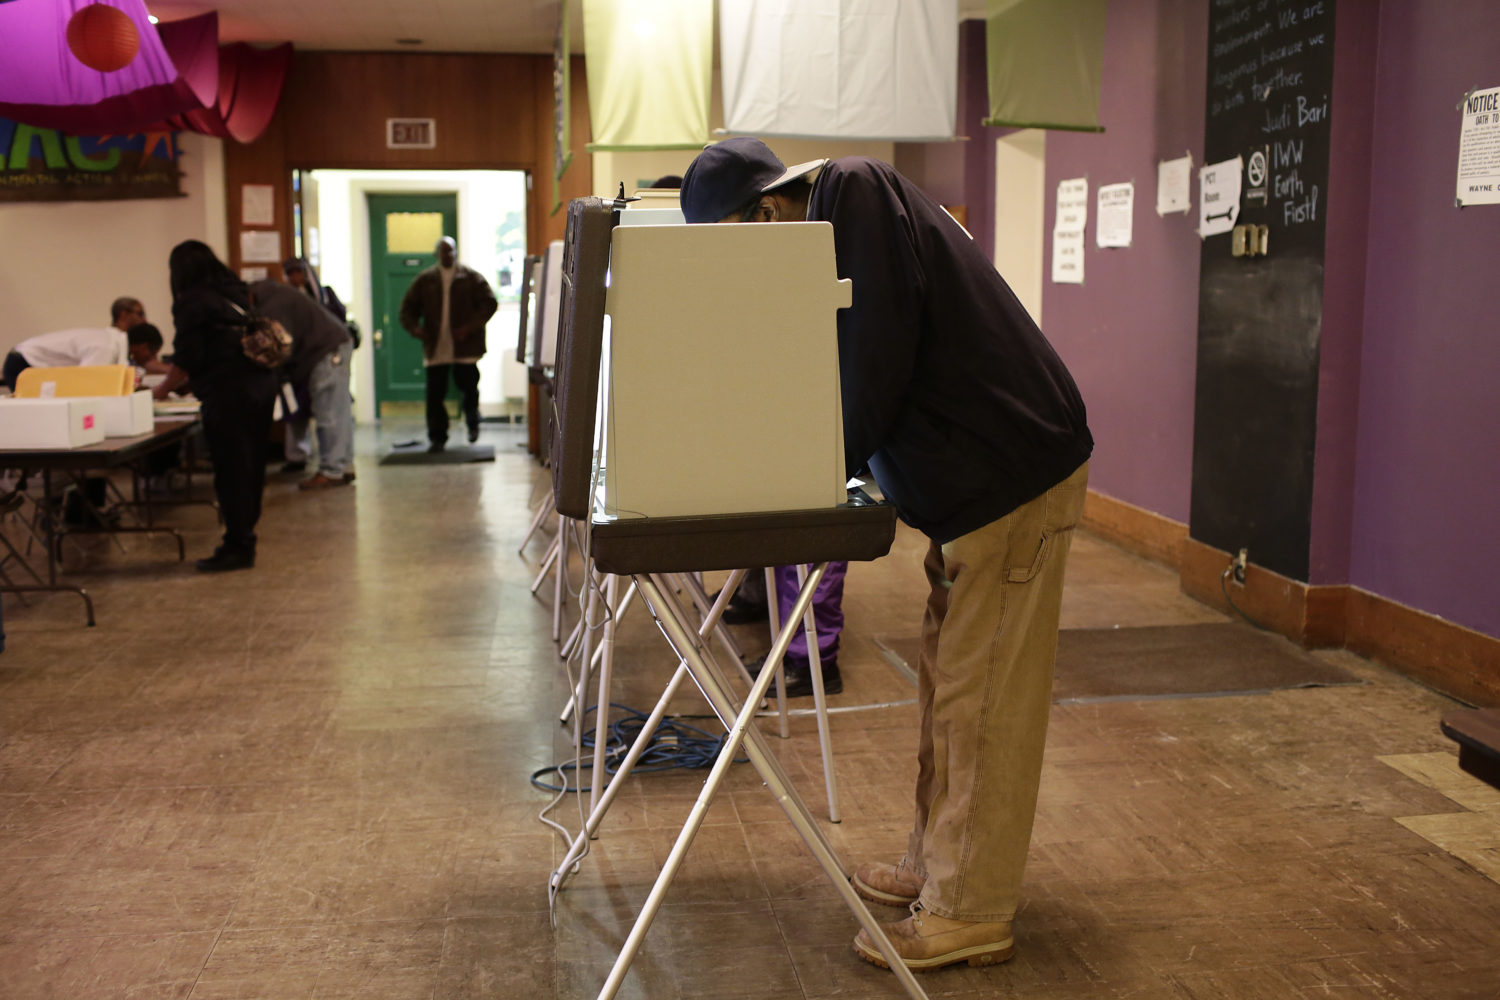 A man fills out his ballot at a polling station during the mid-term elections November 4, 2014 in Detroit, Michigan.